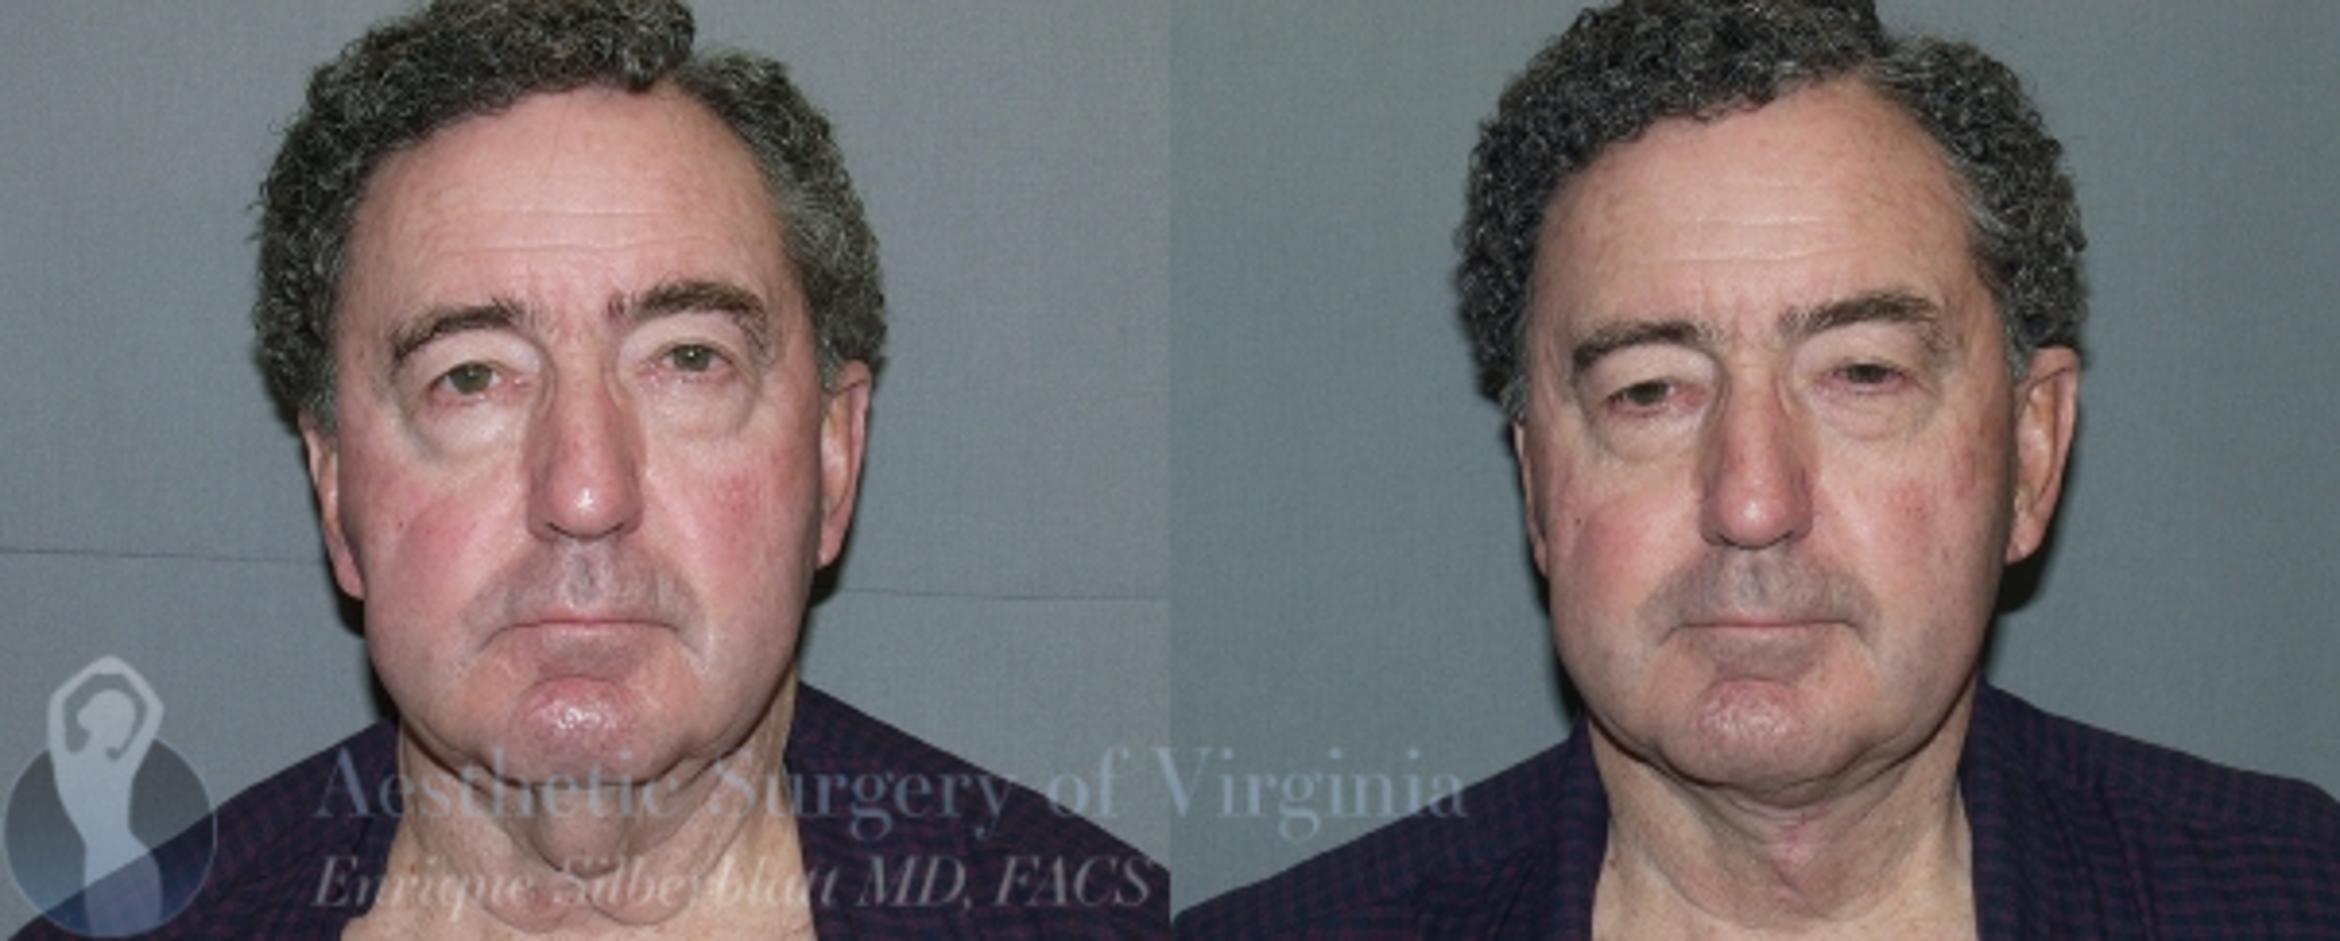 Neck Lift Case 49 Before & After View #1 | Roanoke, VA | Aesthetic Surgery of Virginia: Enrique Silberblatt, MD